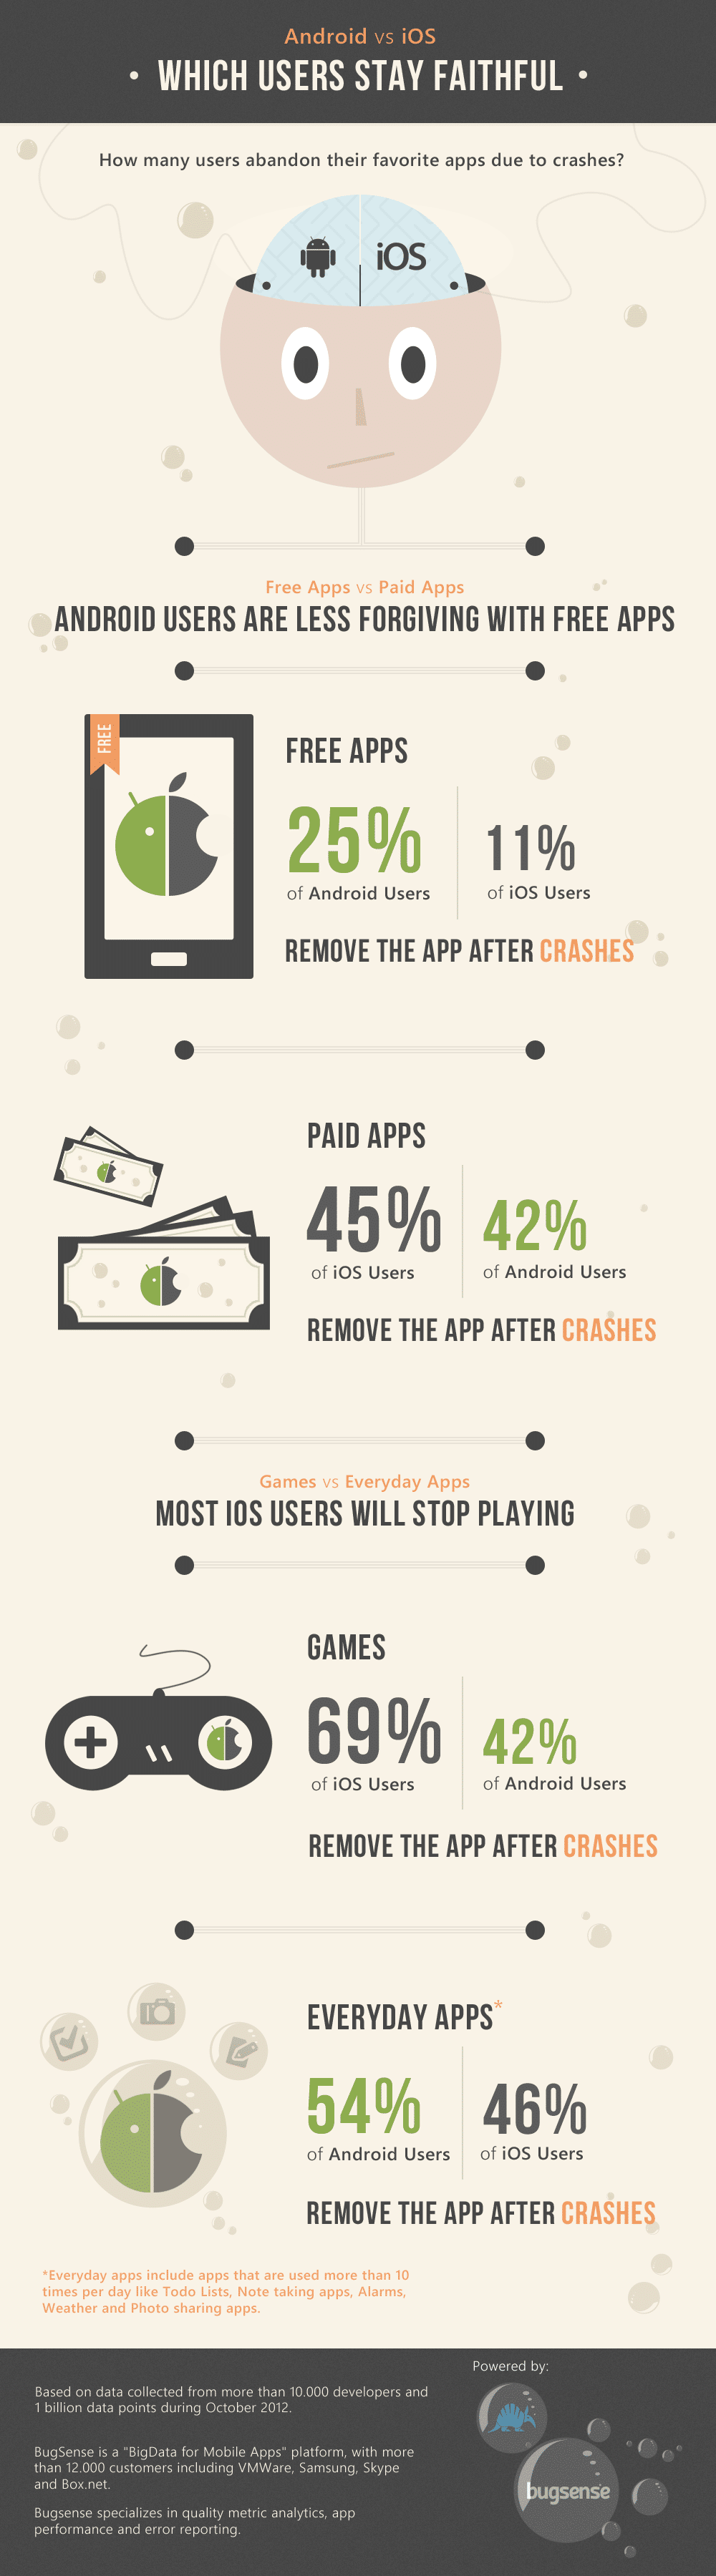 Android vs. iOS: Loyalty Among Users [Infographic]